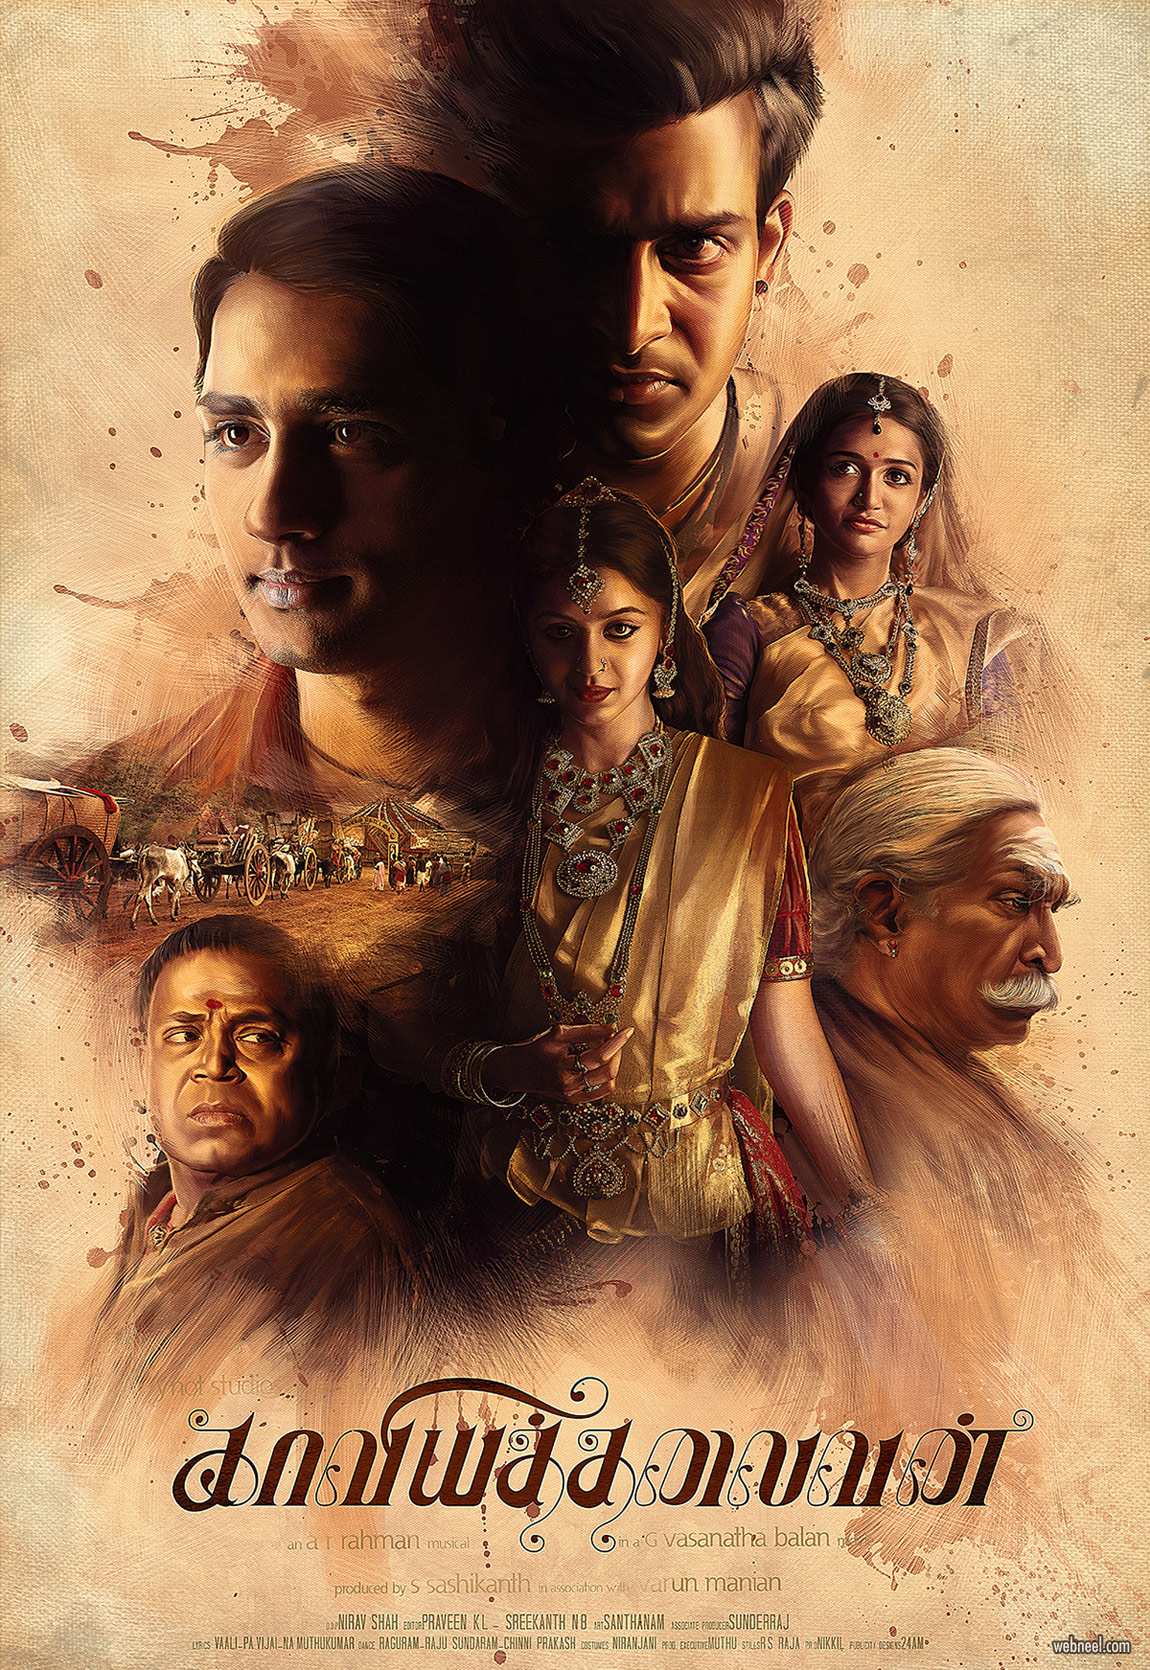 movie poster design india tamil kaviyathalaivan